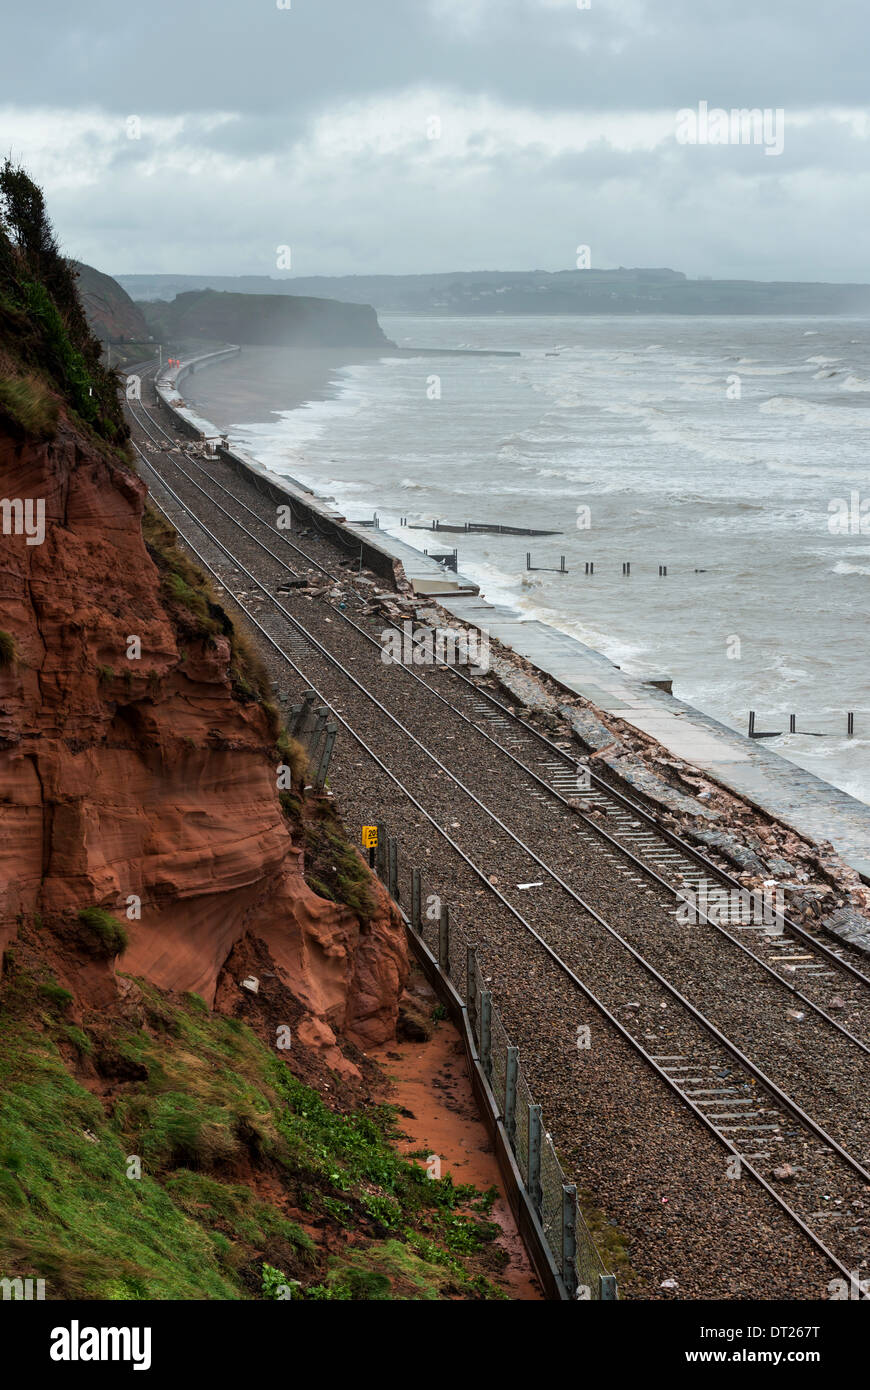 Dawlish,Devon,England. February 2014. The recent storms and high seas have created havoc along the sea defences at Dawlish coast - Stock Image